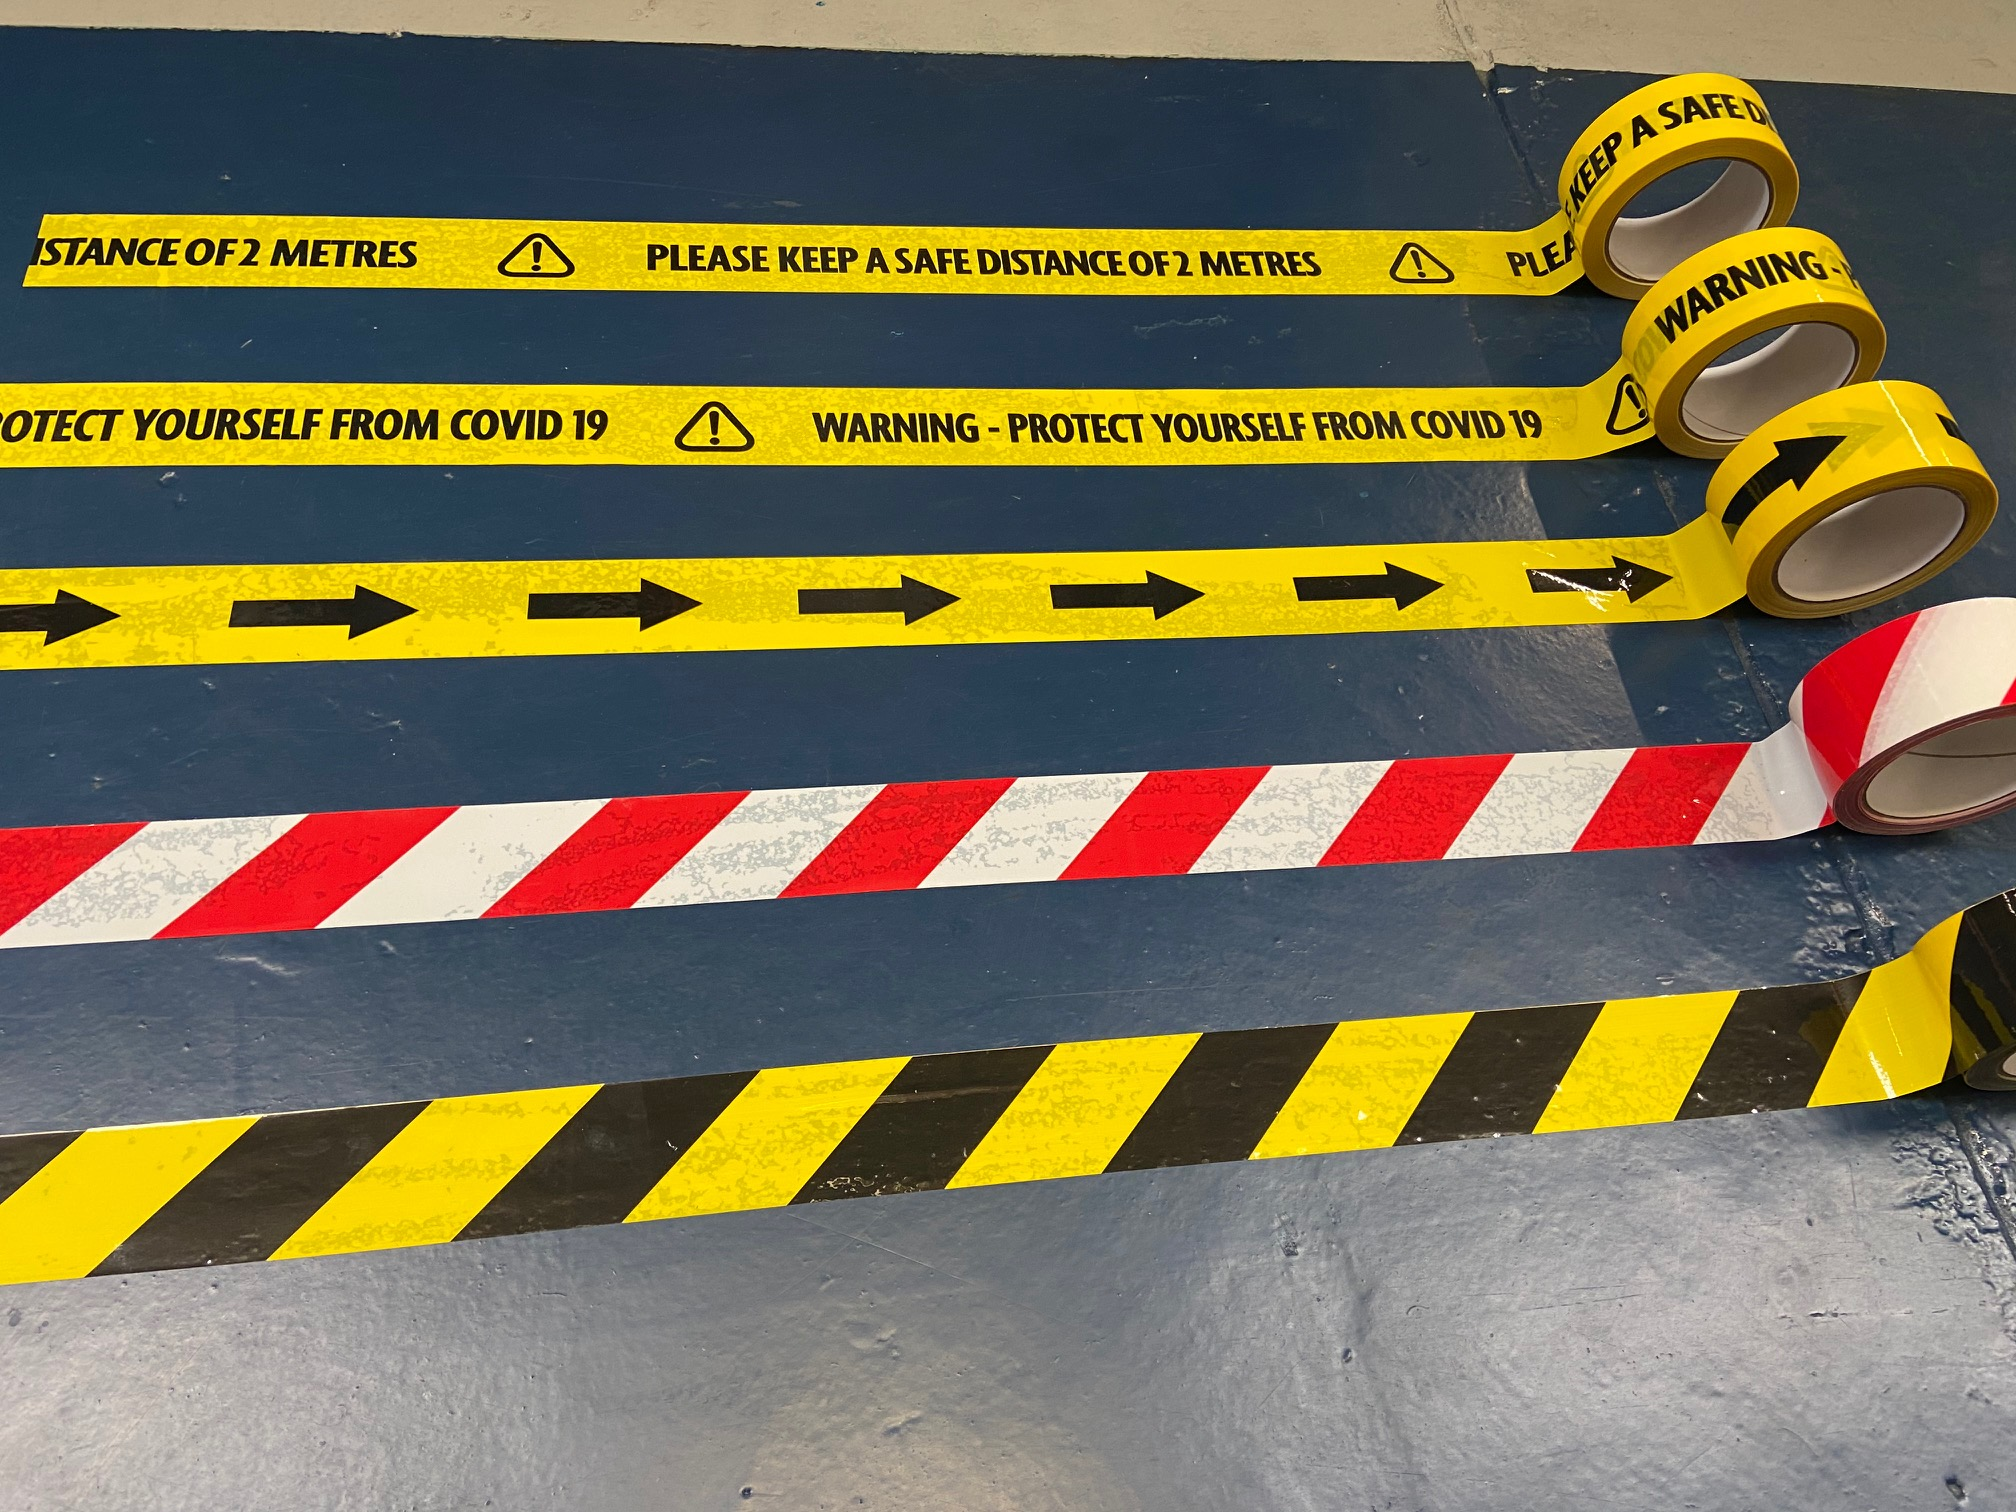 social distancing tape, hazard tape and warning tape